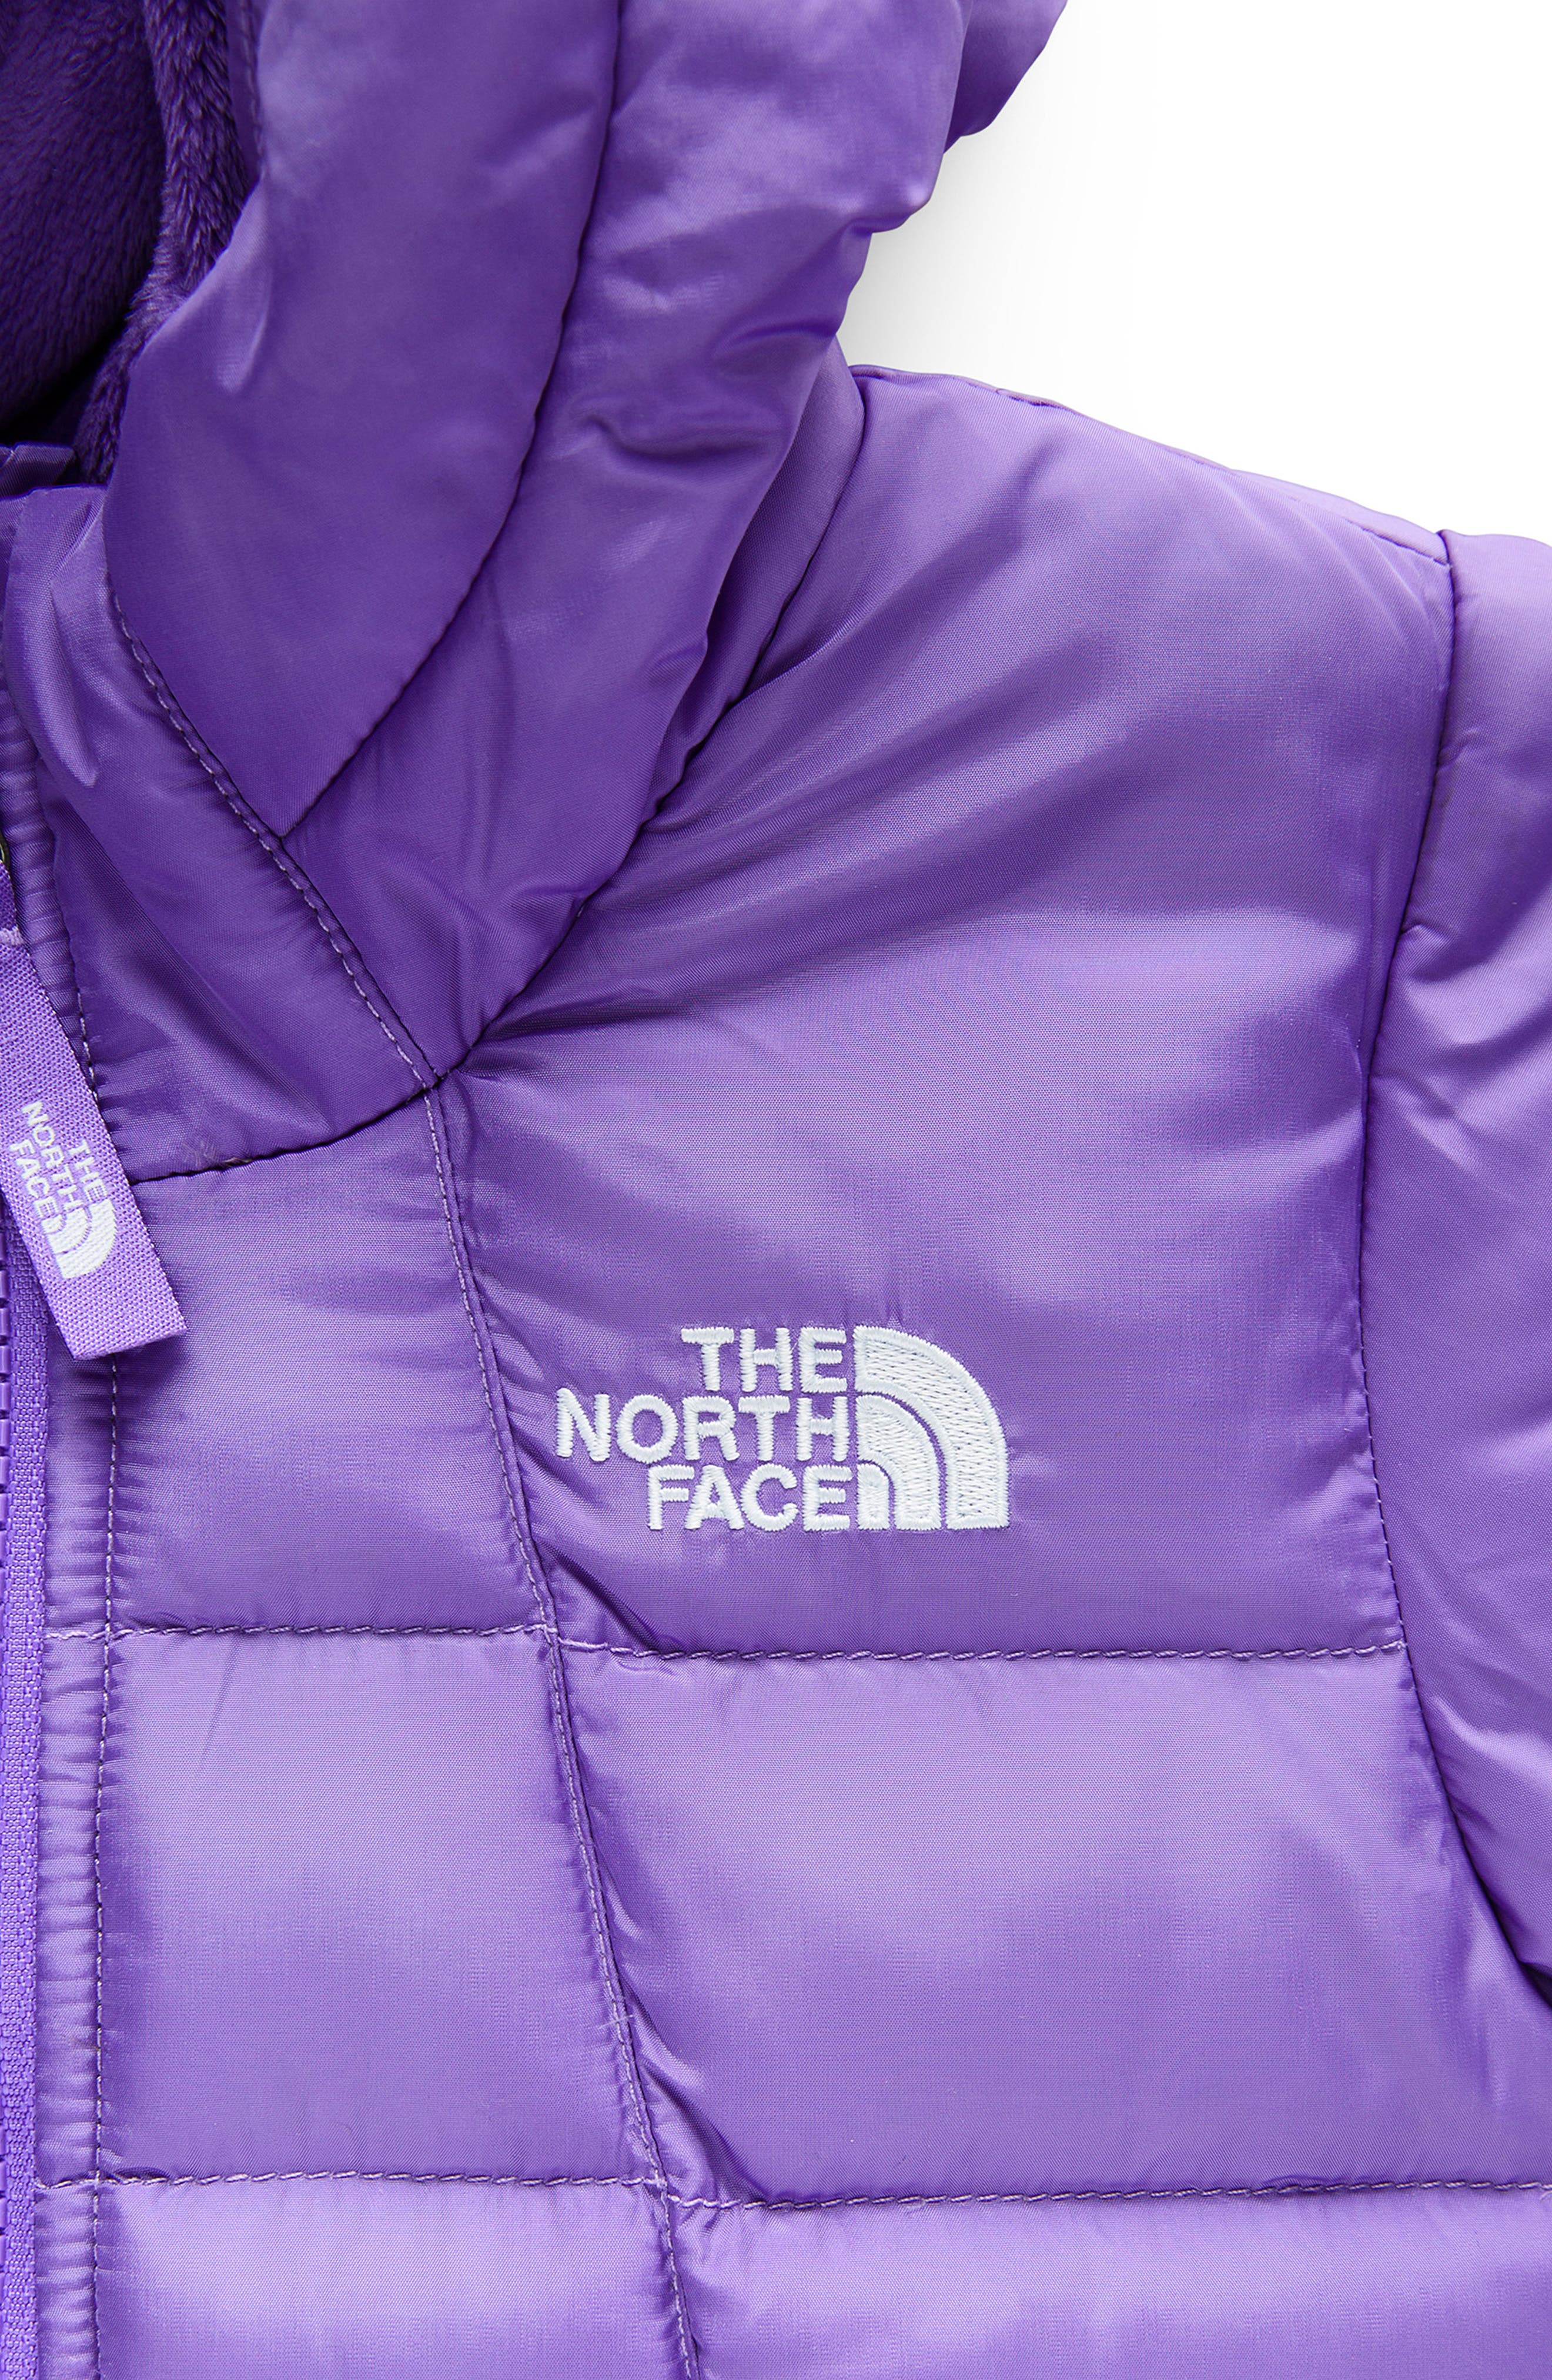 THE NORTH FACE,                             Moondoggy 2.0 Water Repellent Down Jacket,                             Alternate thumbnail 3, color,                             501